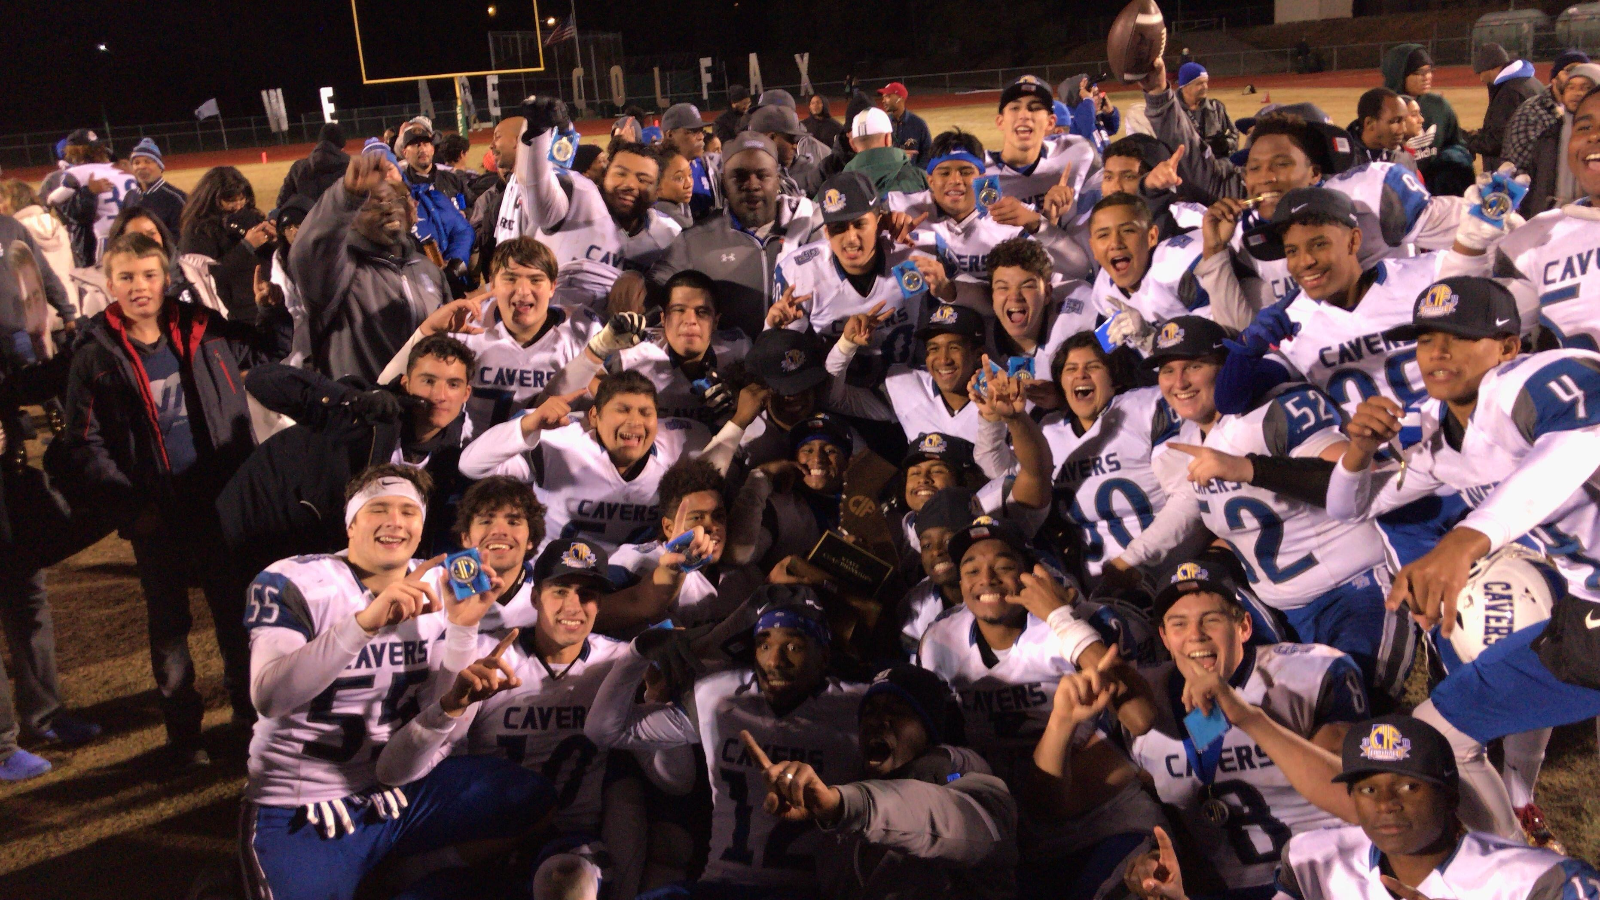 SDHS Caver Football team is the new Division 5-A State Champions